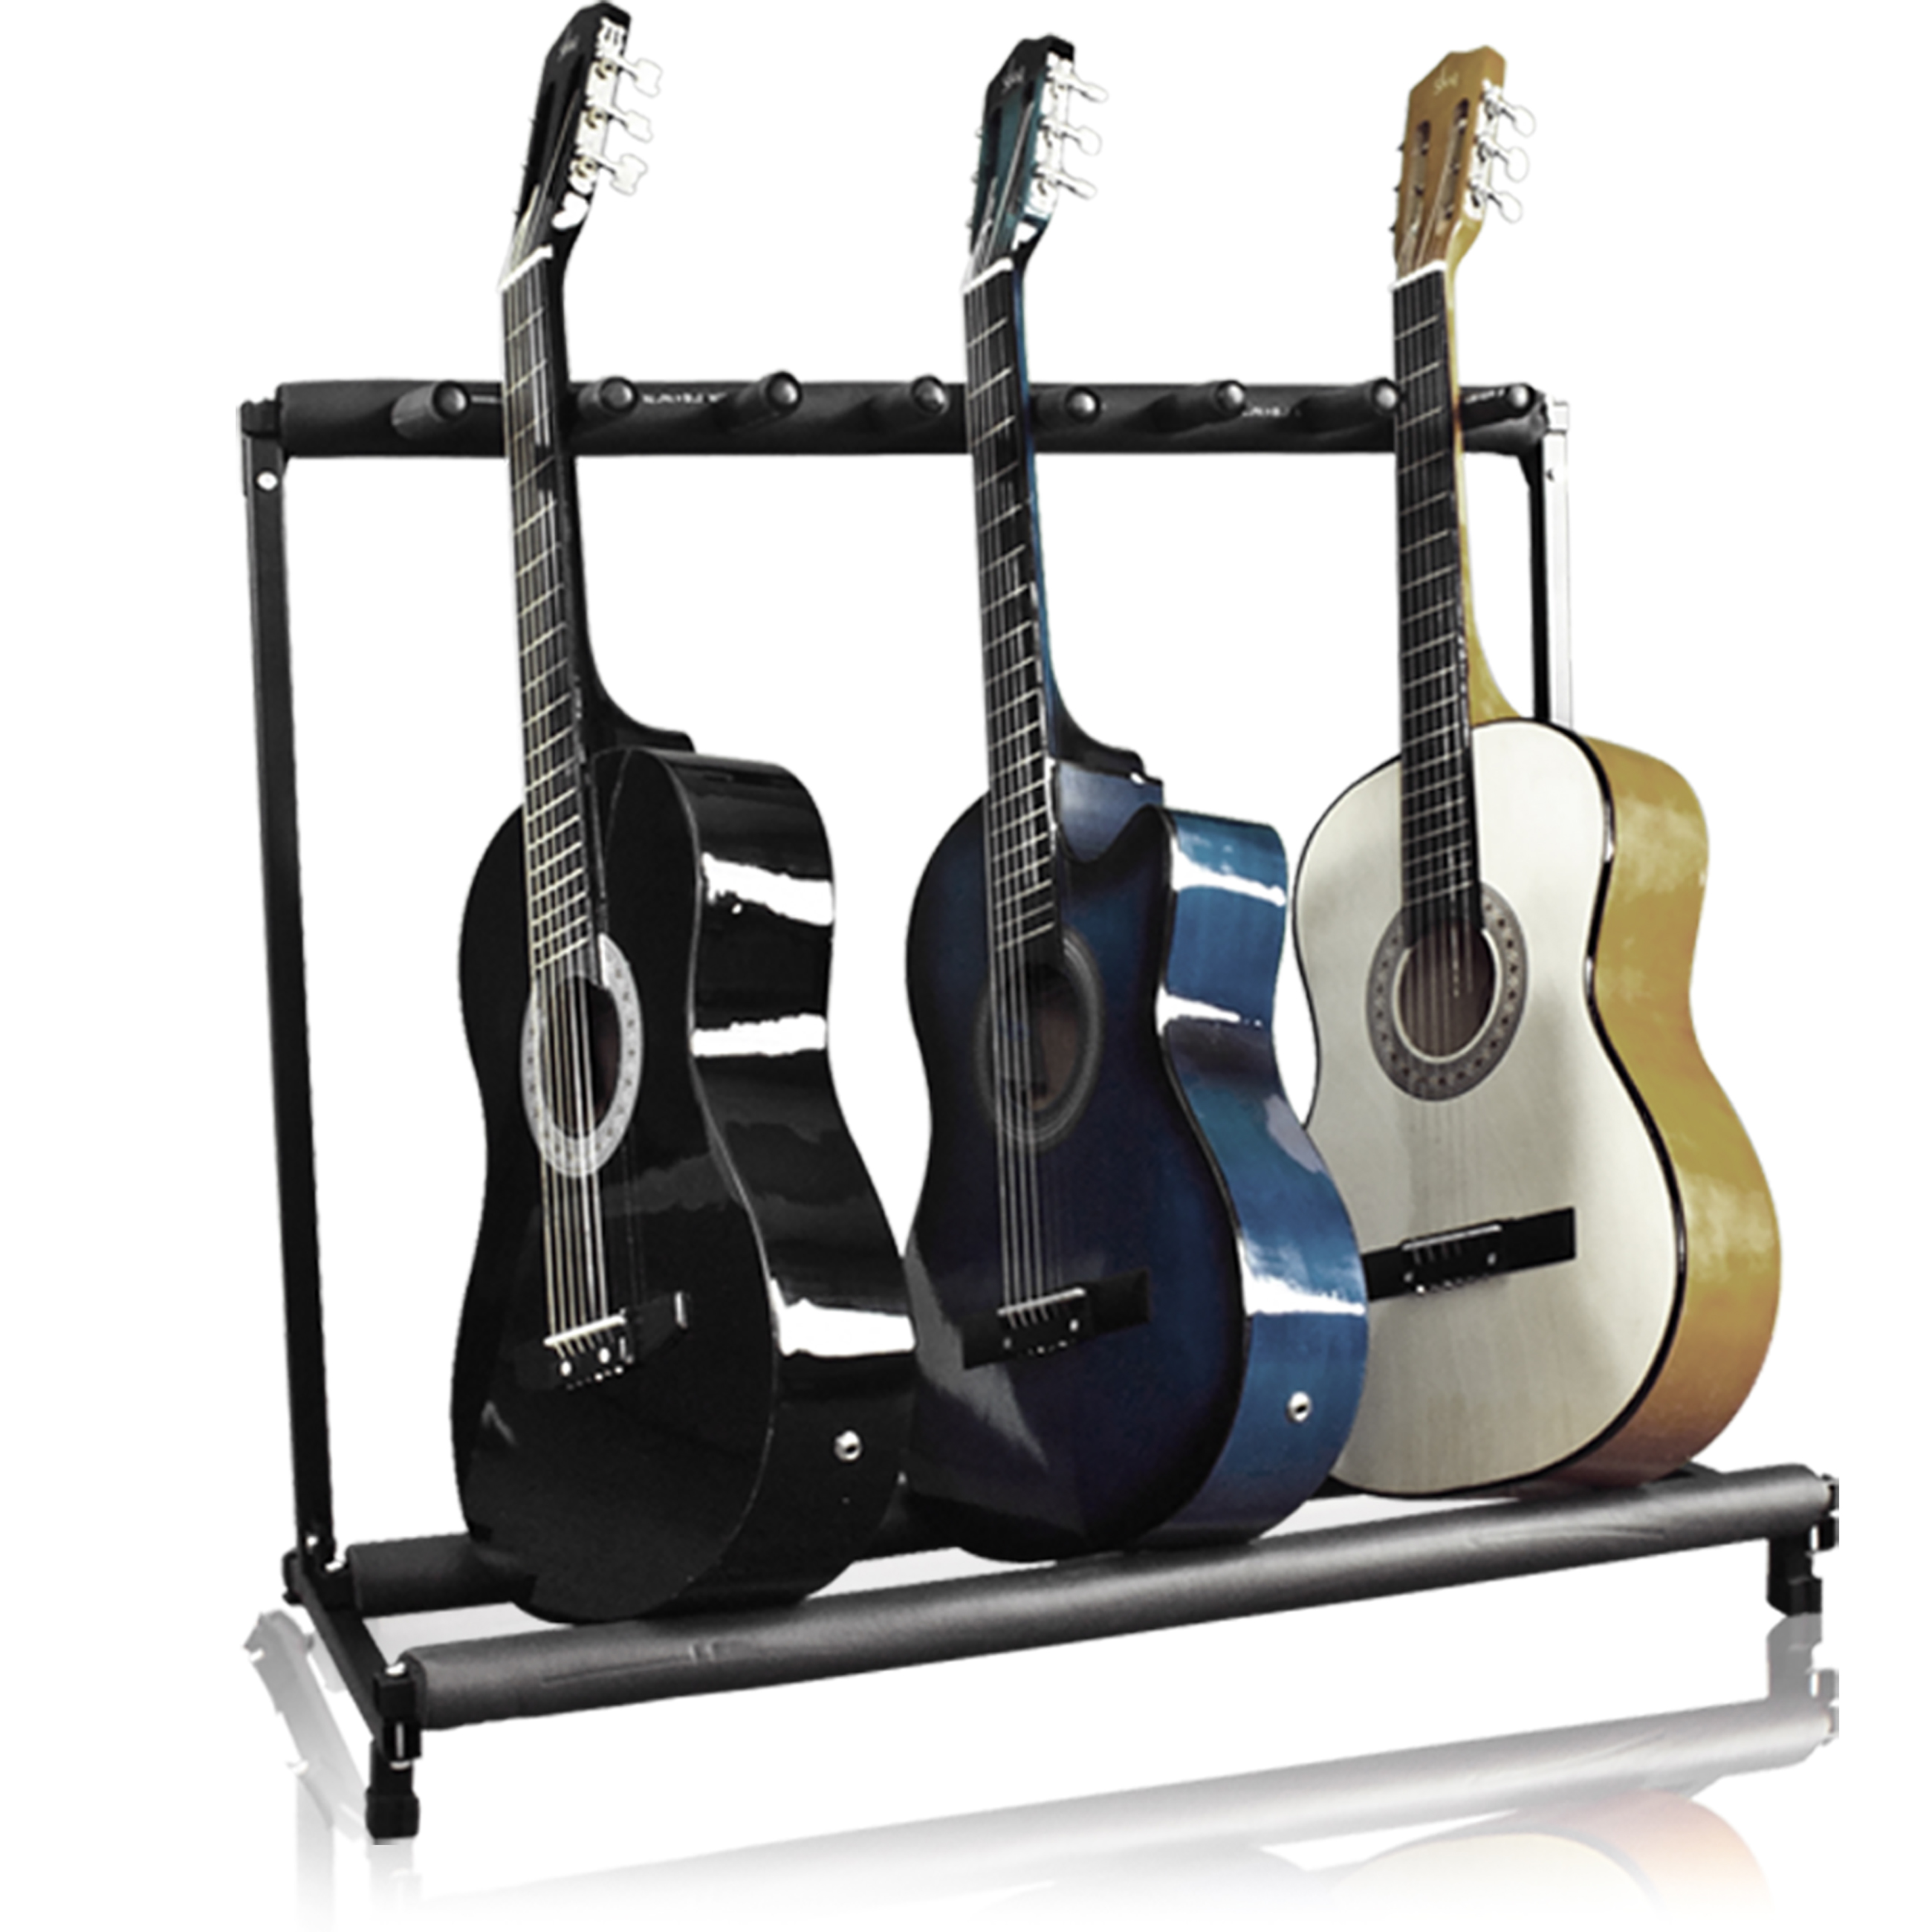 Best Choice Products Guitar Stand 7 Holder Guitar Folding Stand Rack Band Stage Bass... by Best Choice Products